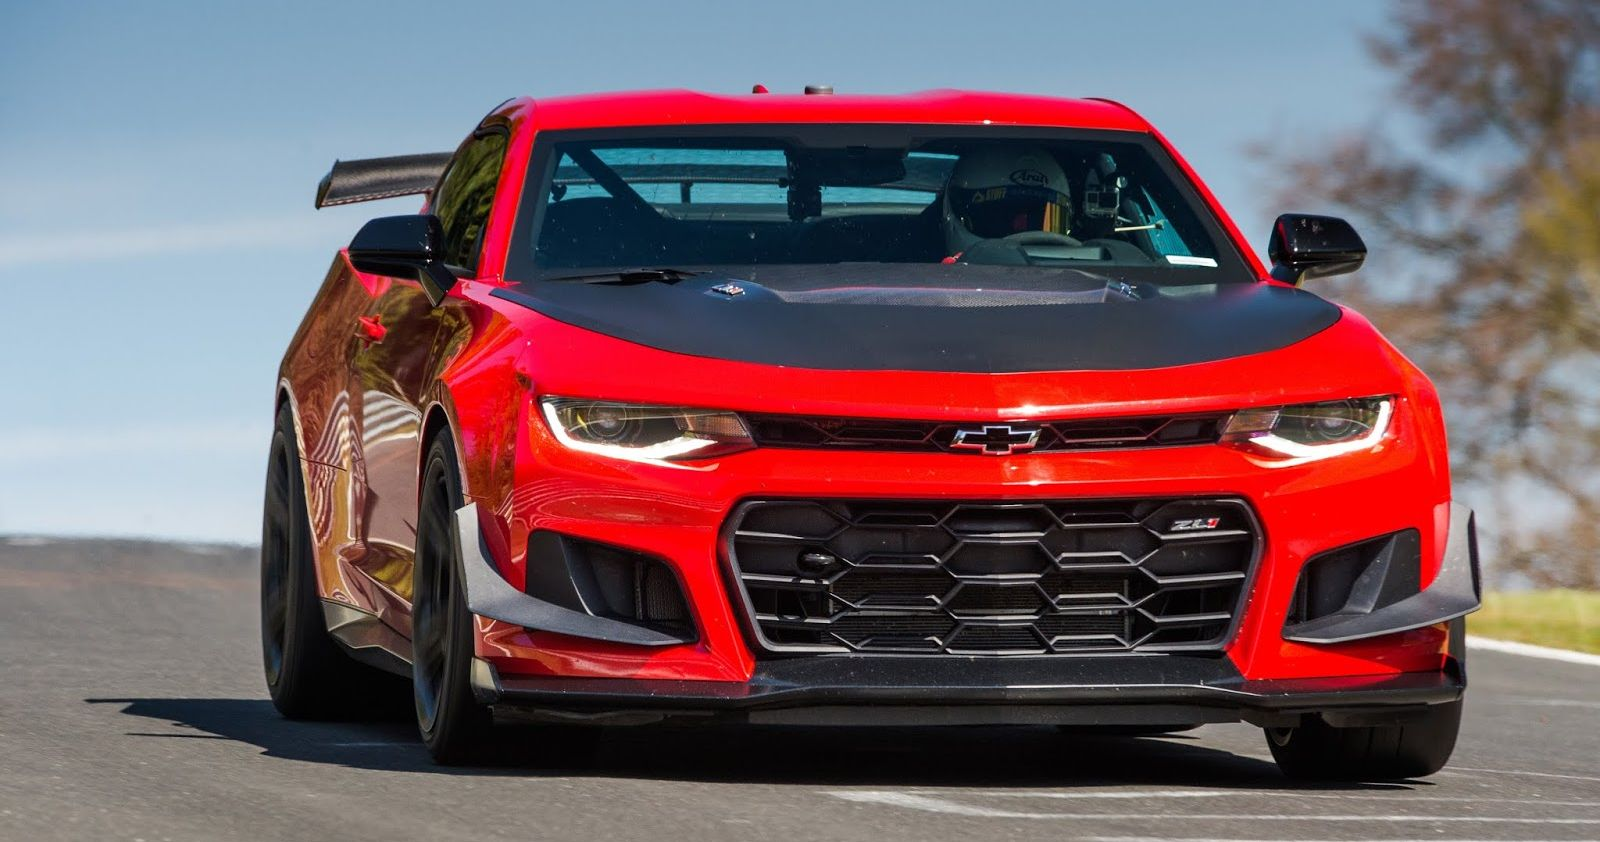 2020 Hennessey Camaro ZL1 1LE With 850 HP Test Drive | HotCars